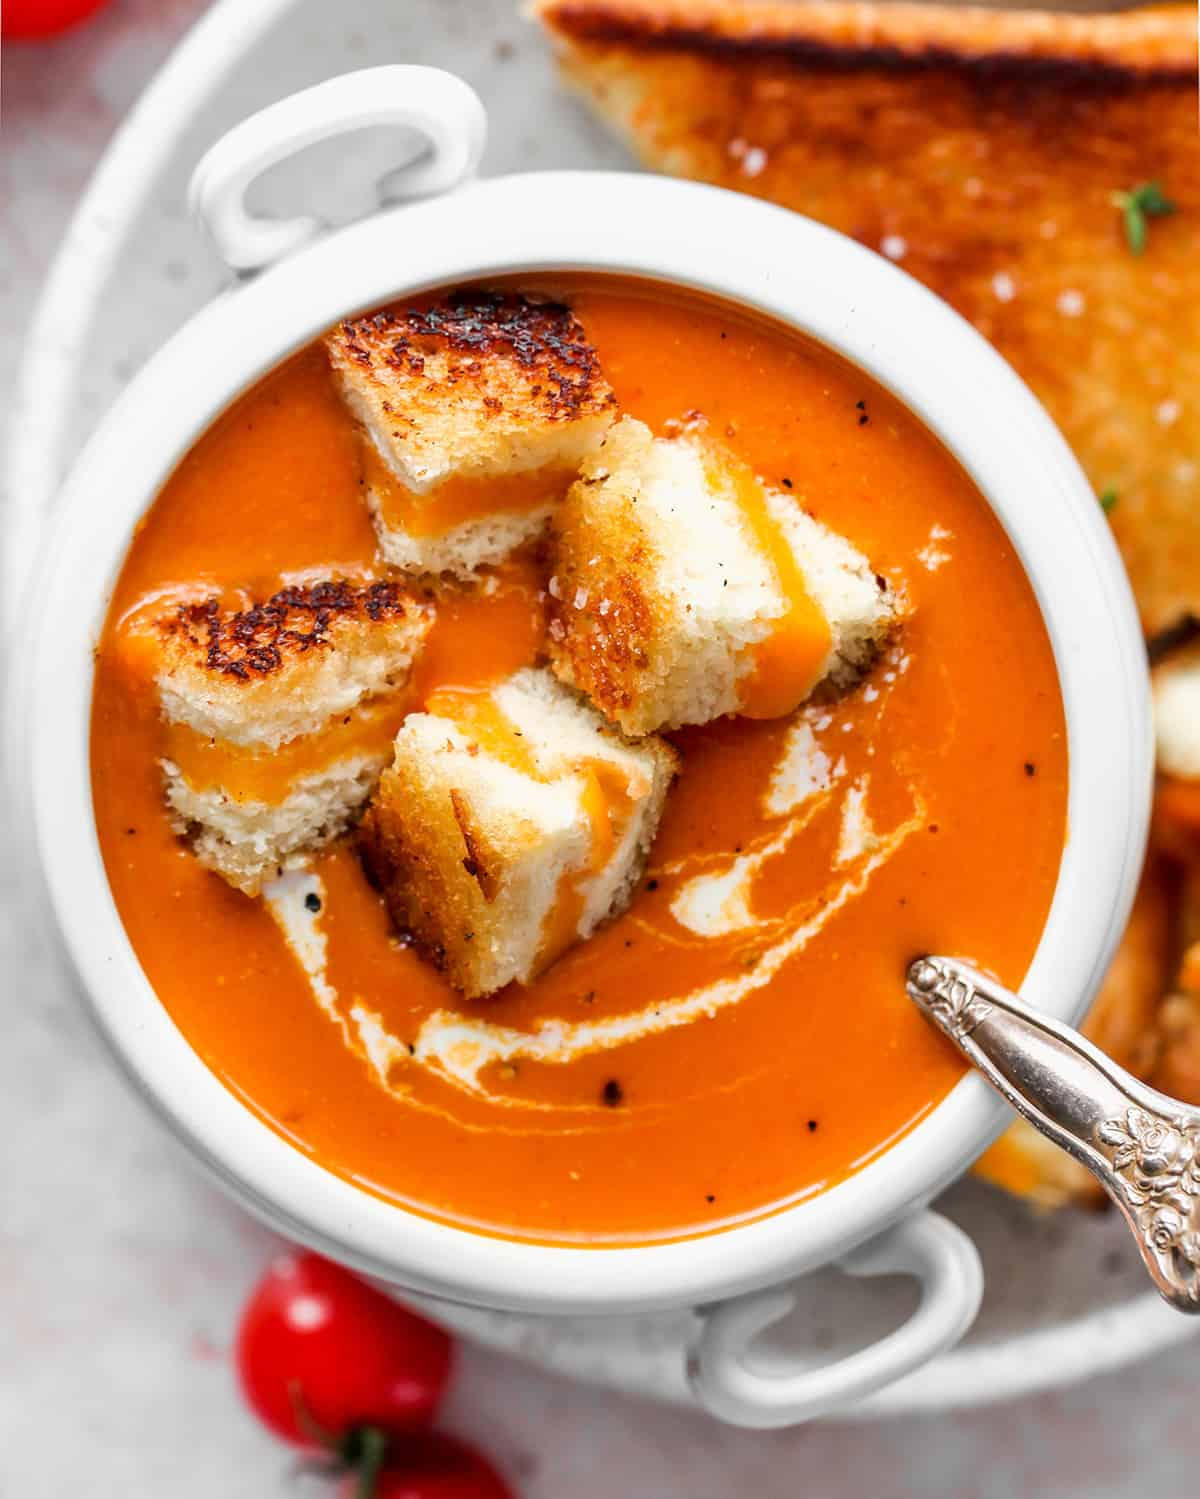 bowl of Homemade Tomato Soup with grilled cheese pieces inside